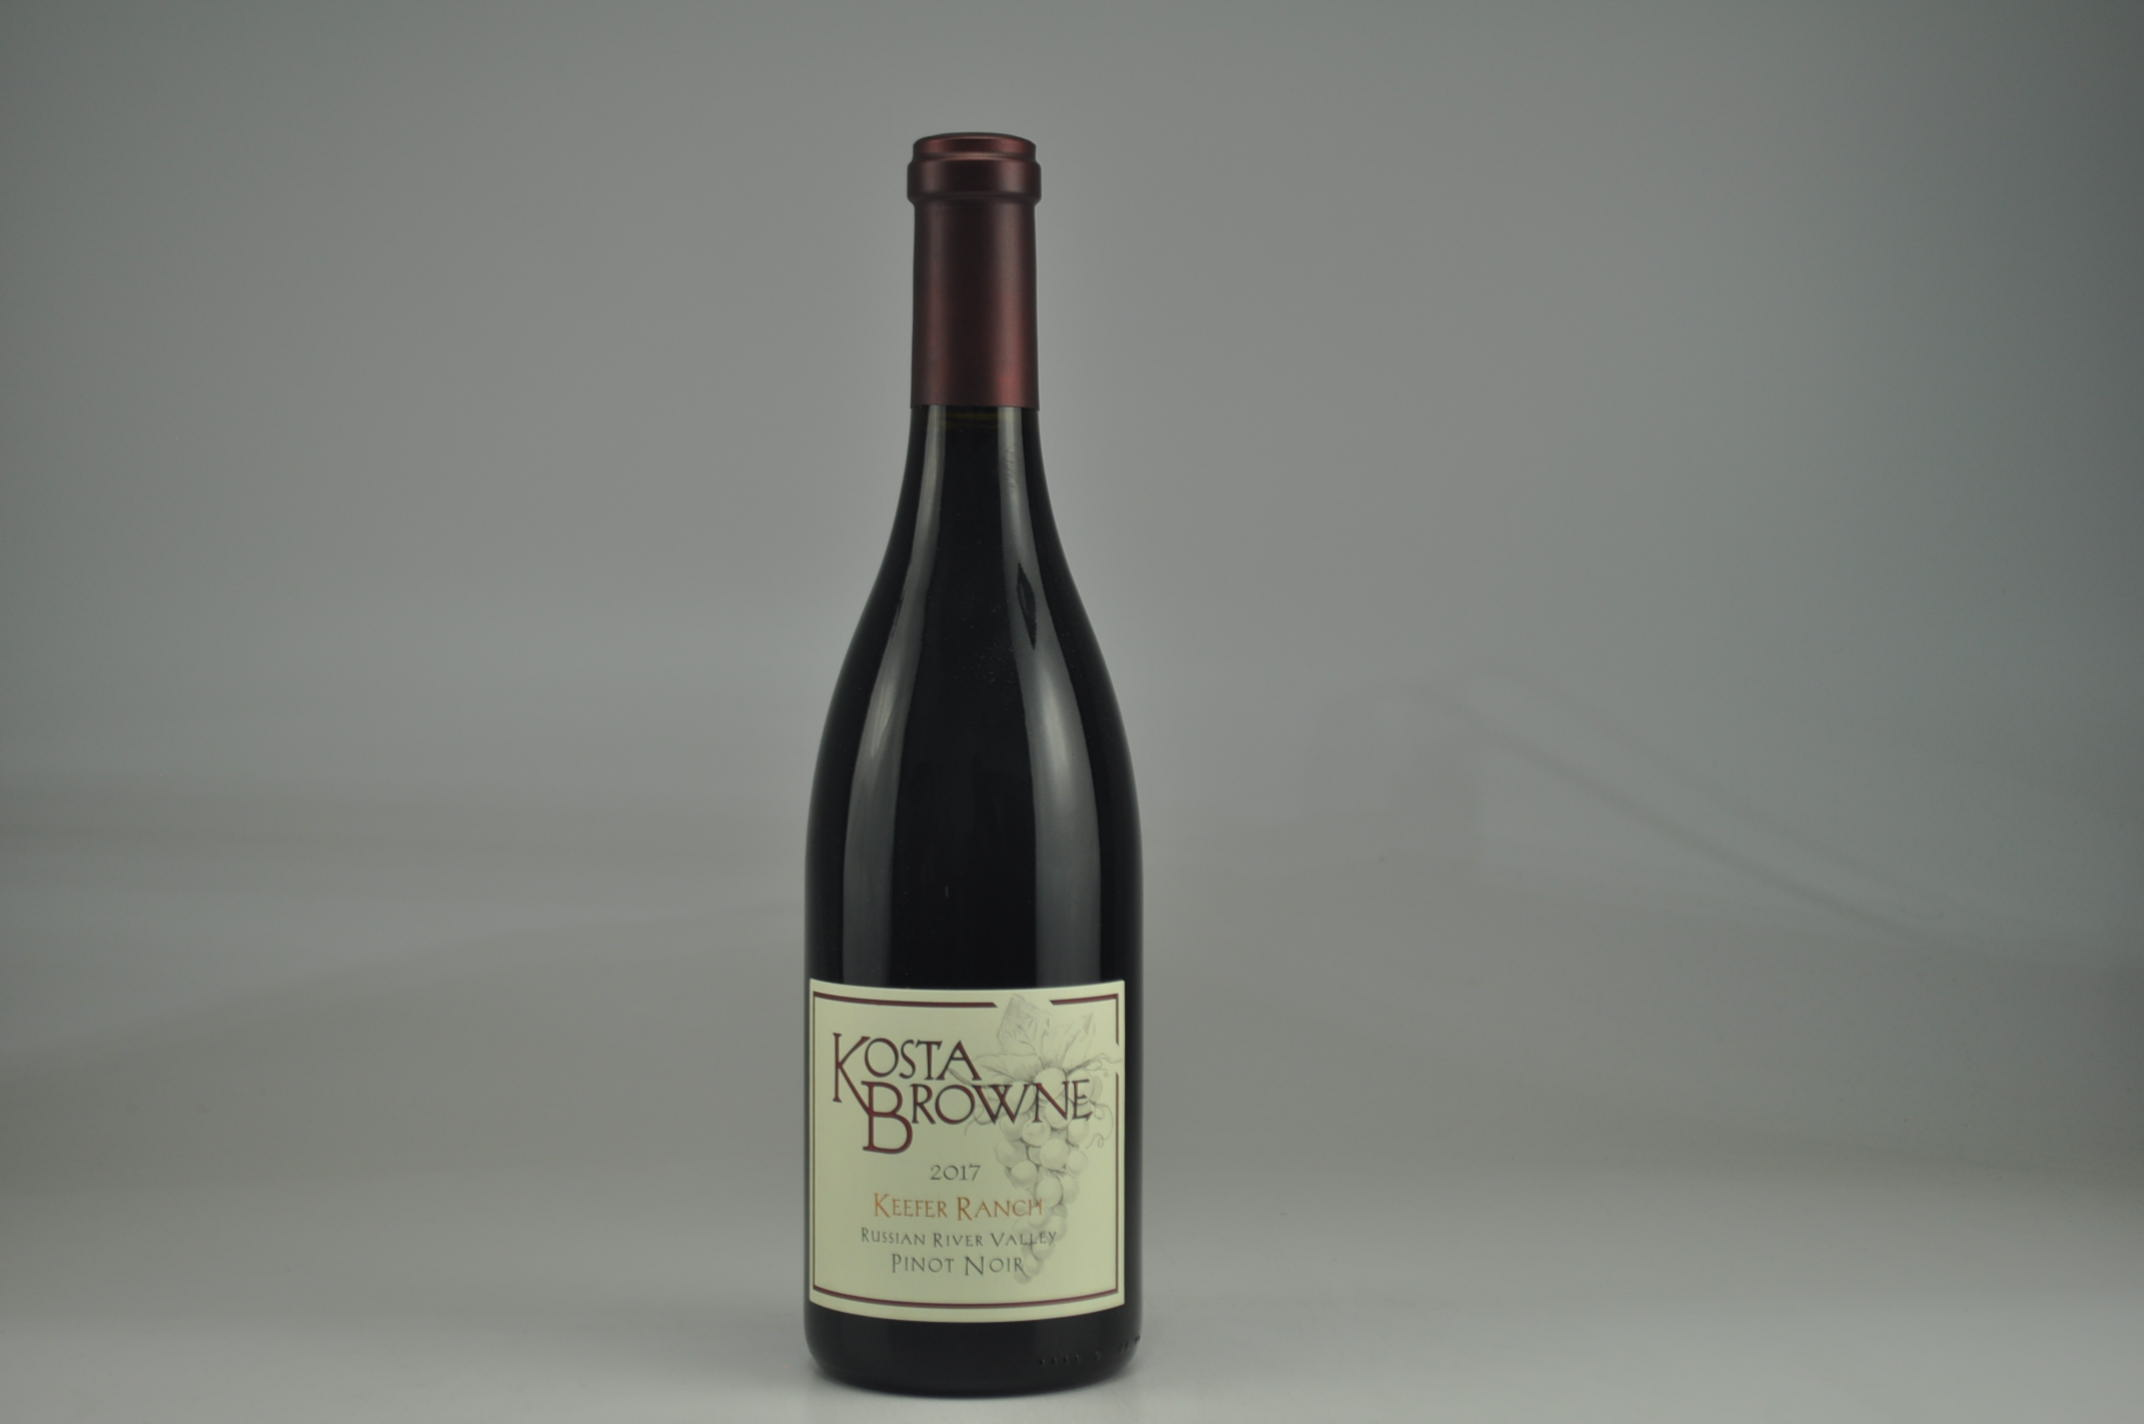 2017 Kosta Browne Pinot Noir Keefer Ranch